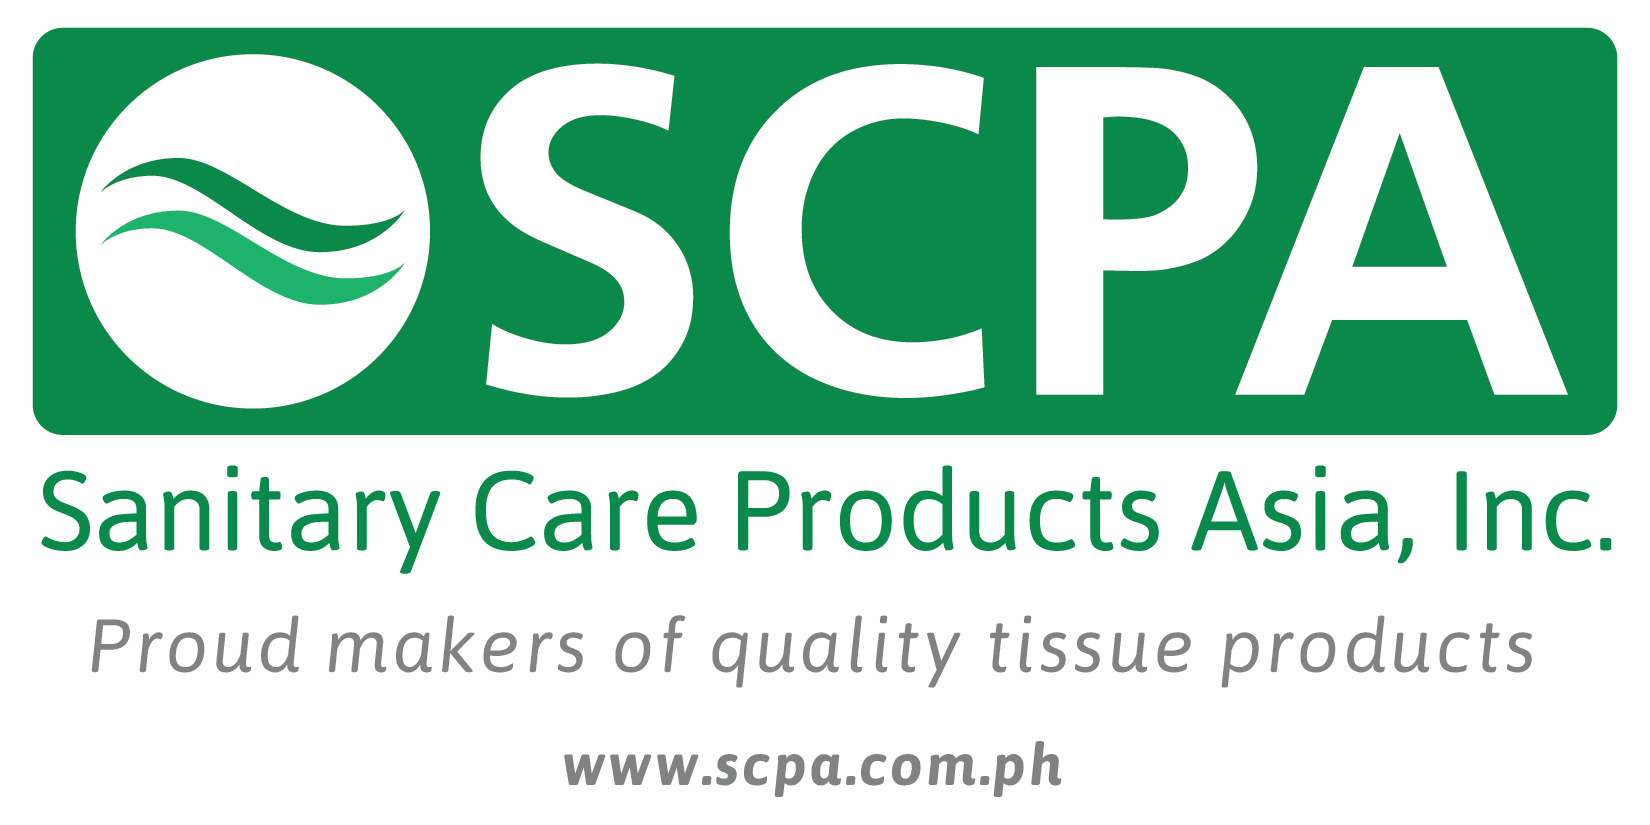 Sanitary Care Products Asia, Inc. (SCPA)